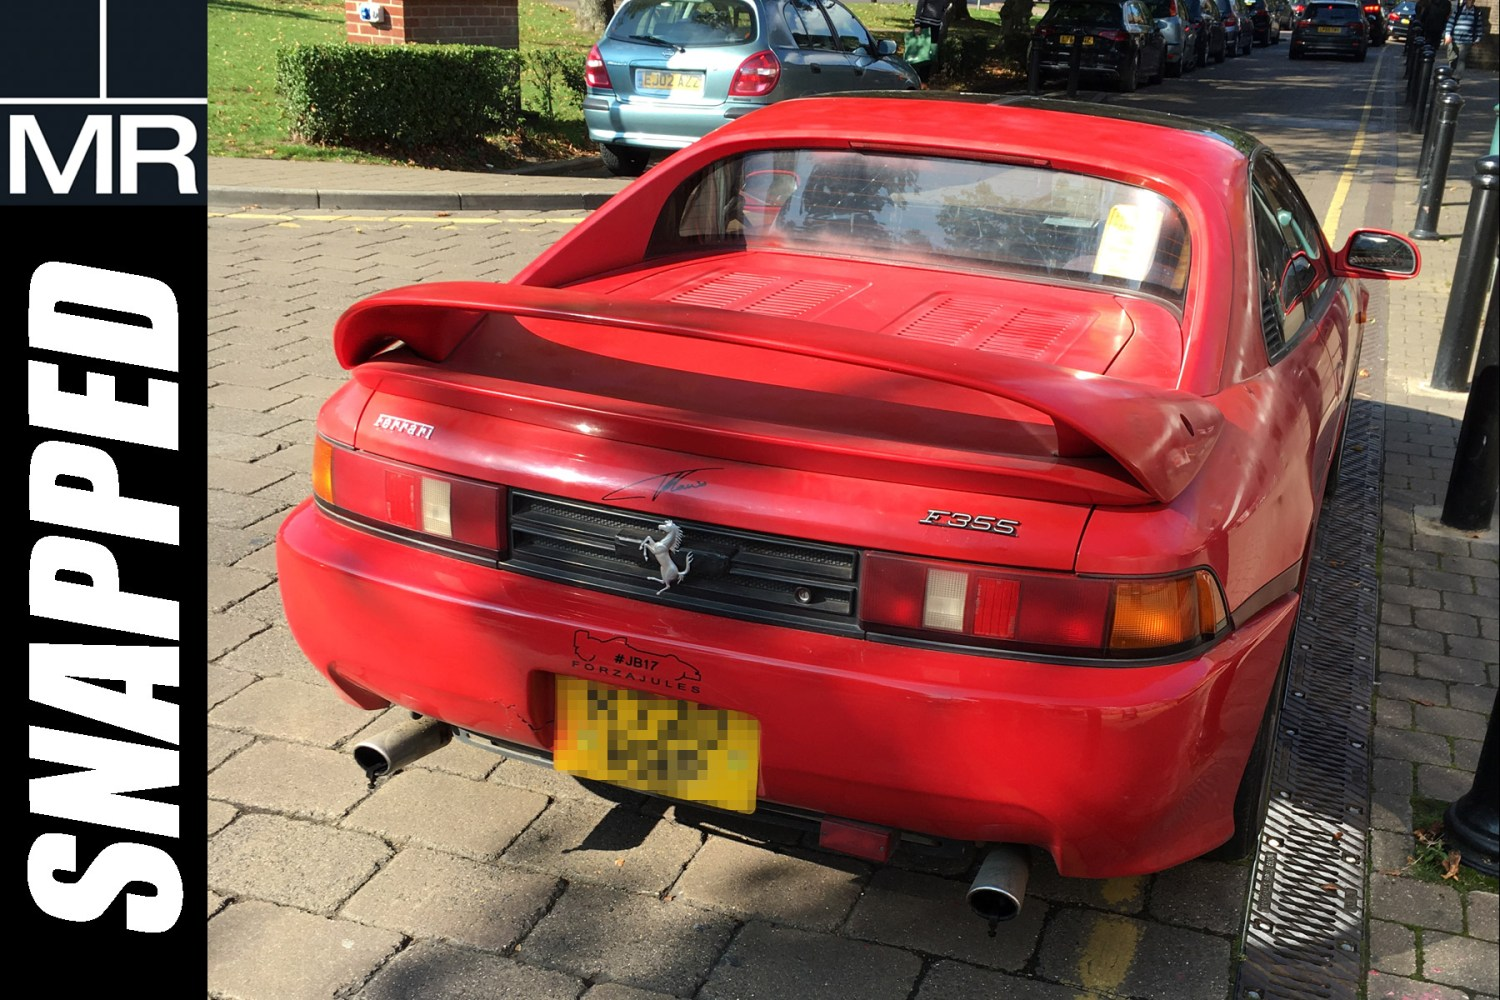 Snapped: this Toyota MR2 thinks it's a Ferrari